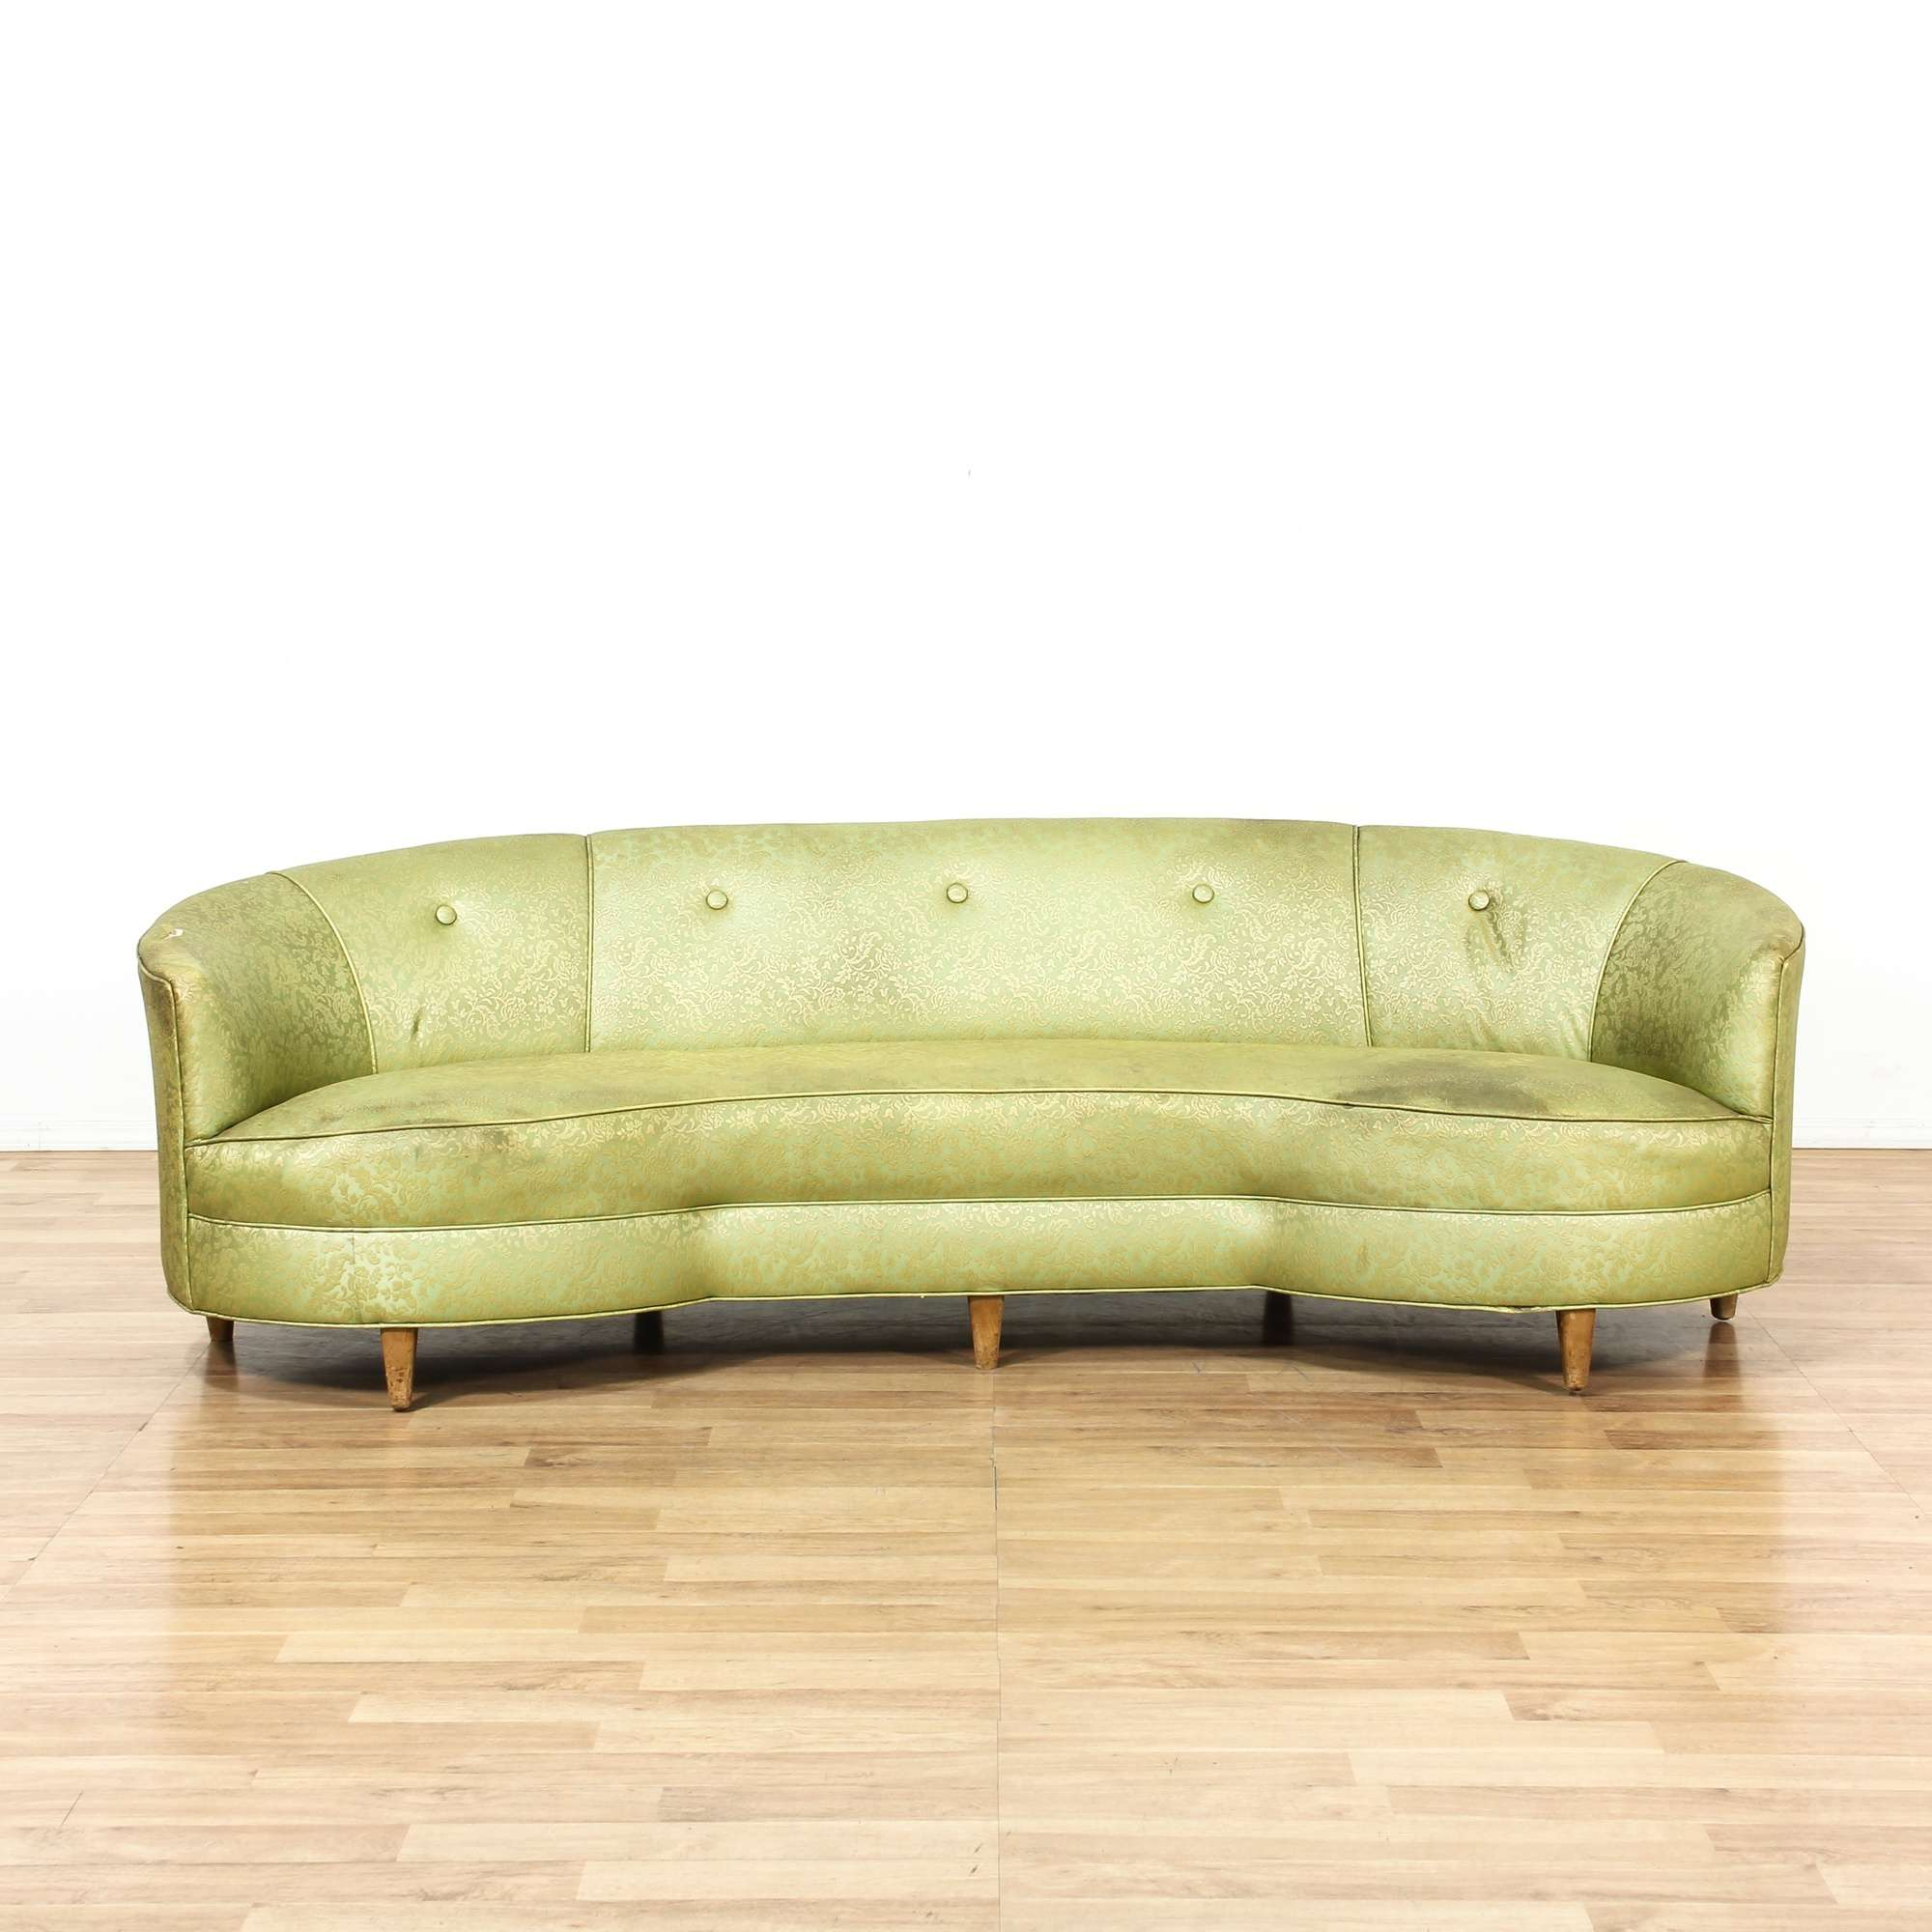 about decor and sofas loveseats couches home elites loveseat curved